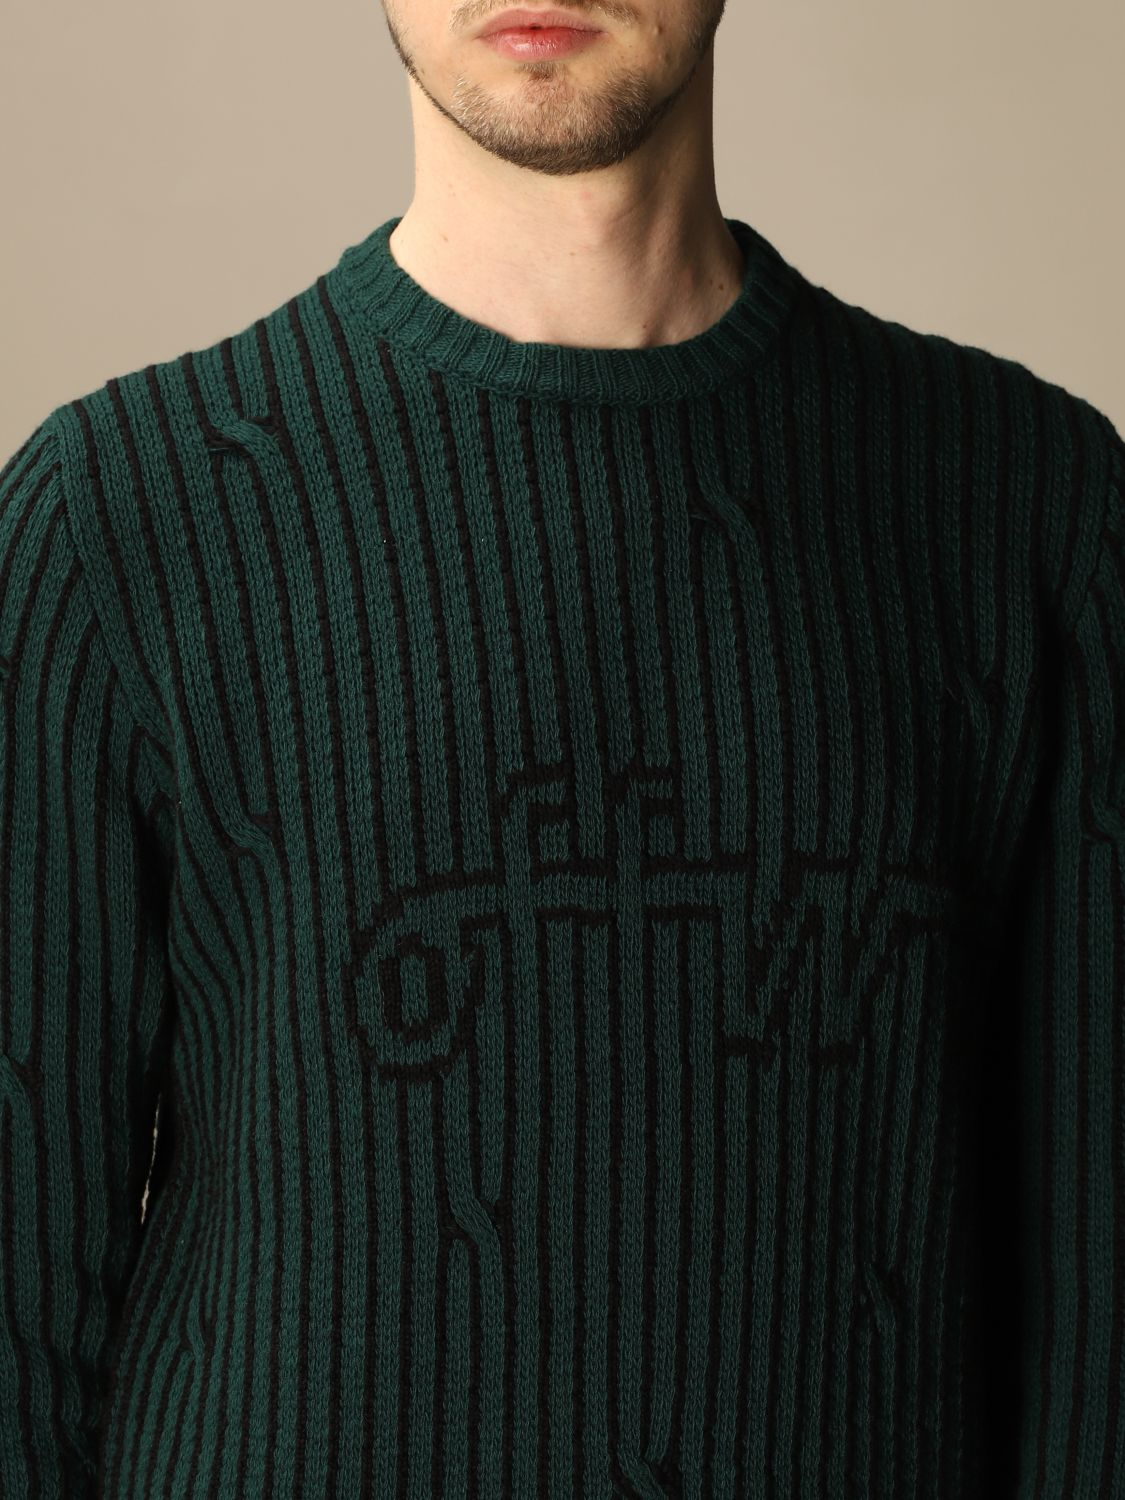 Sweater Off White: Off White men's sweater green 4